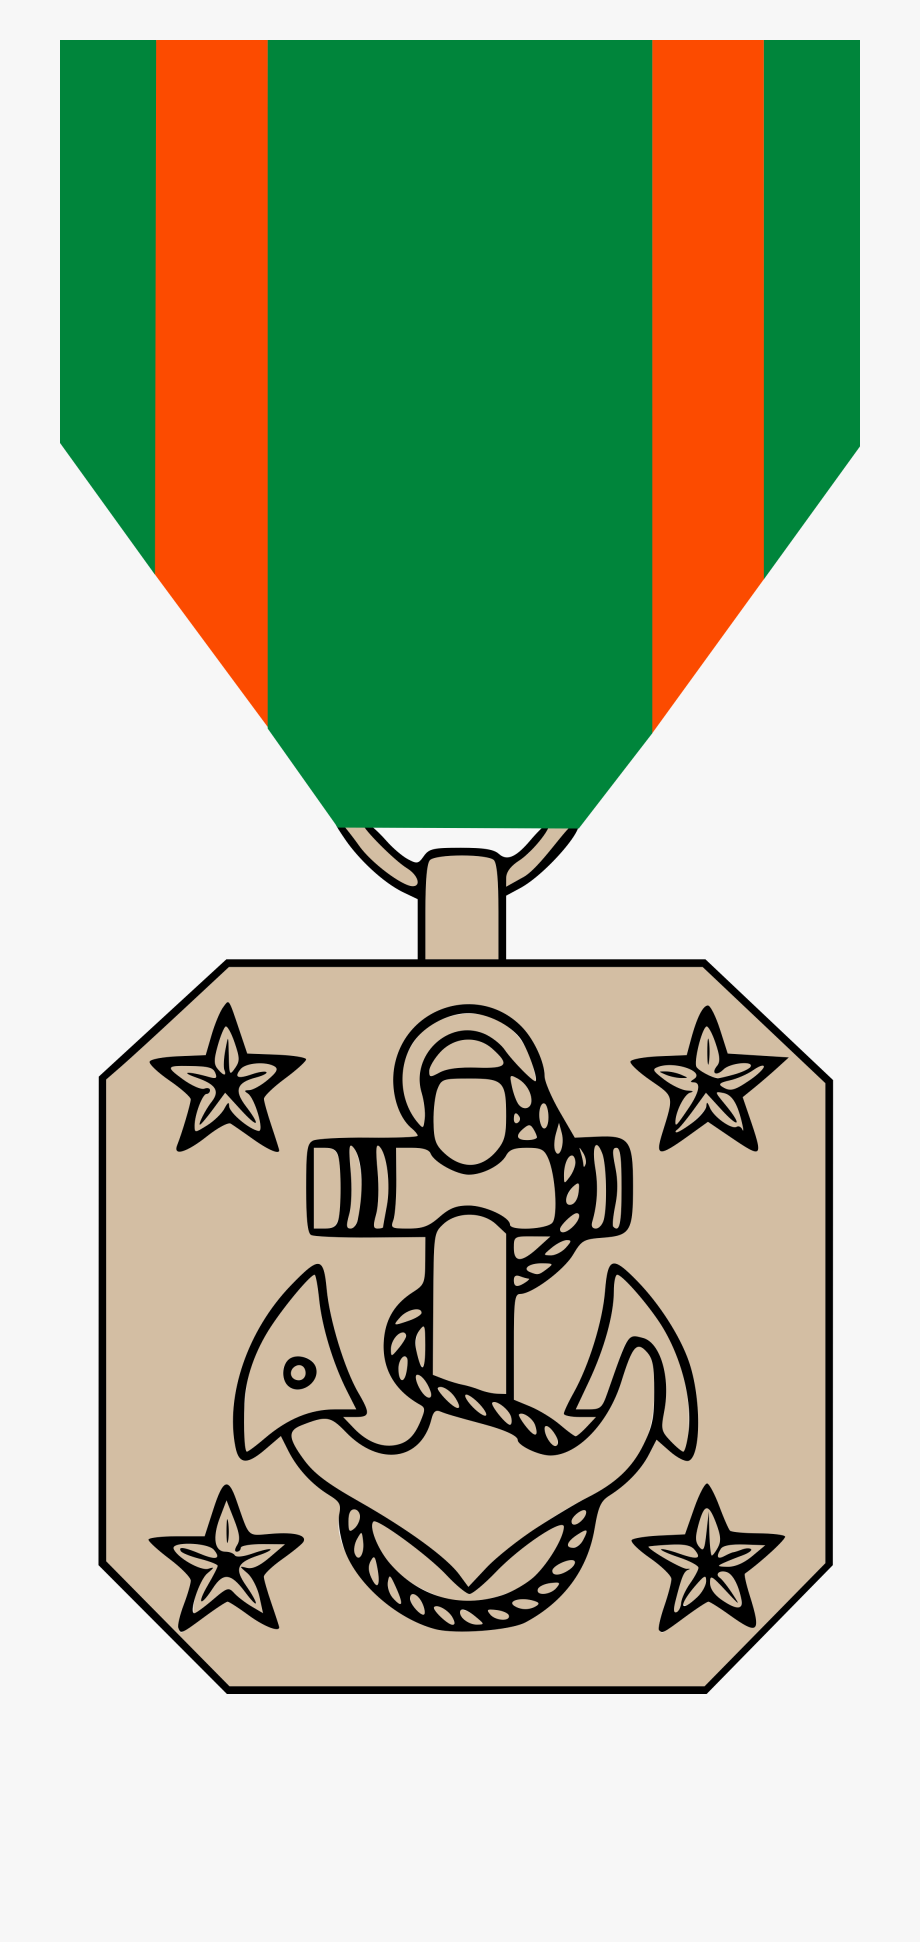 Medal clipart achievement. File navy and marine